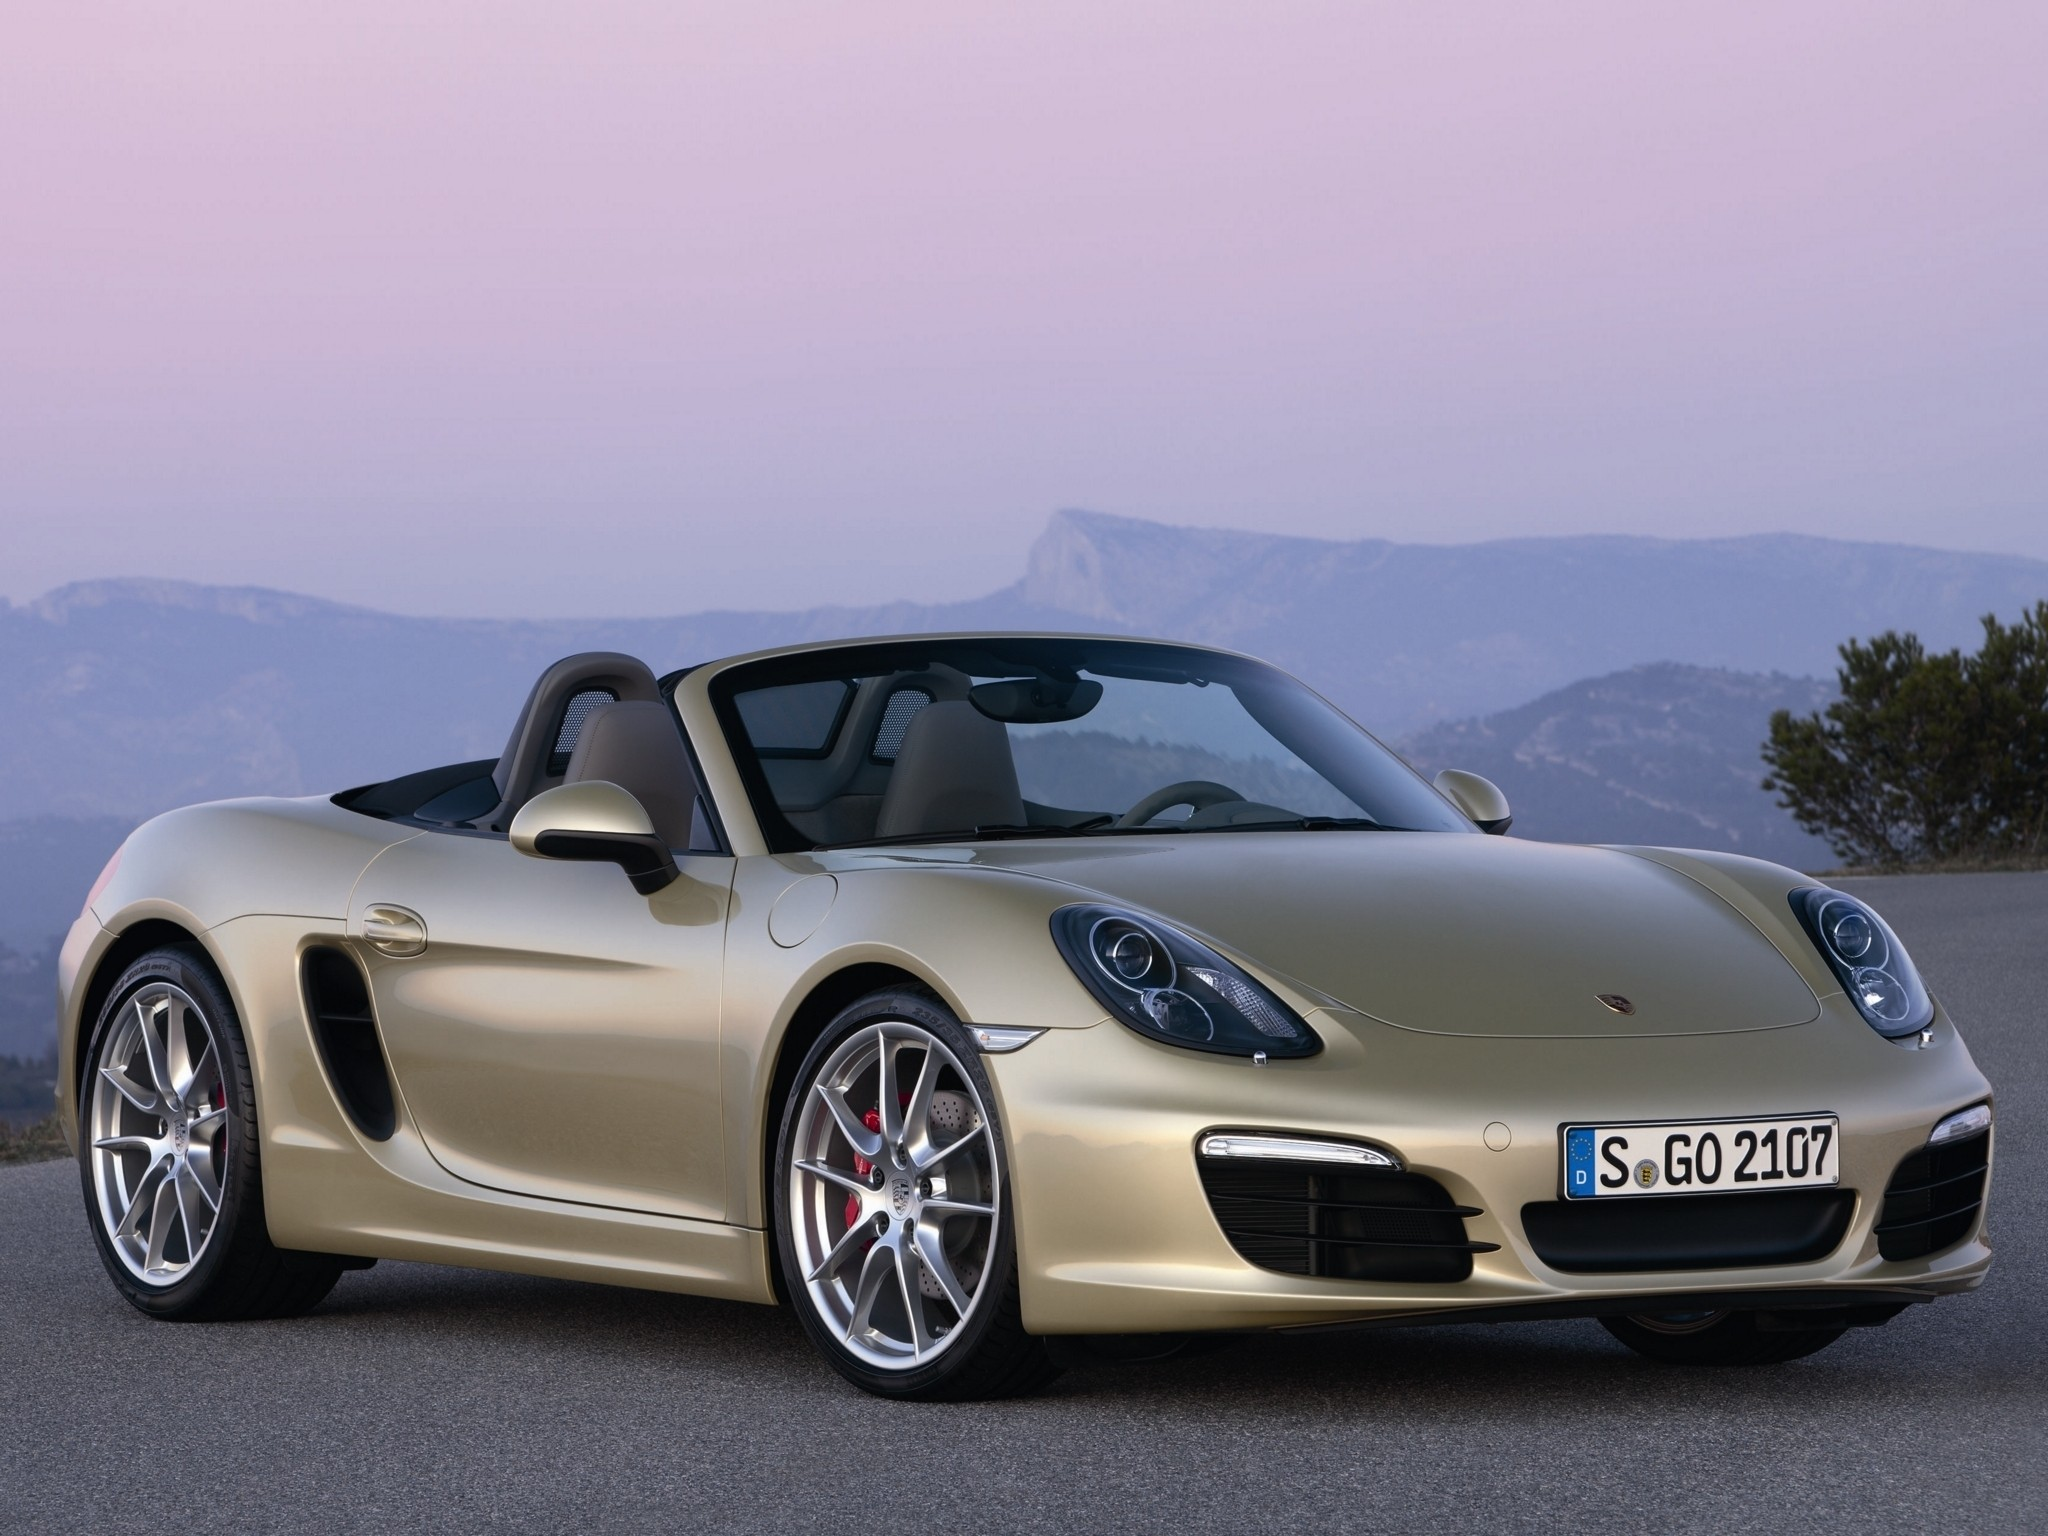 porsche boxster s 981 specs 2012 2013 2014 2015 2016 autoevolution. Black Bedroom Furniture Sets. Home Design Ideas